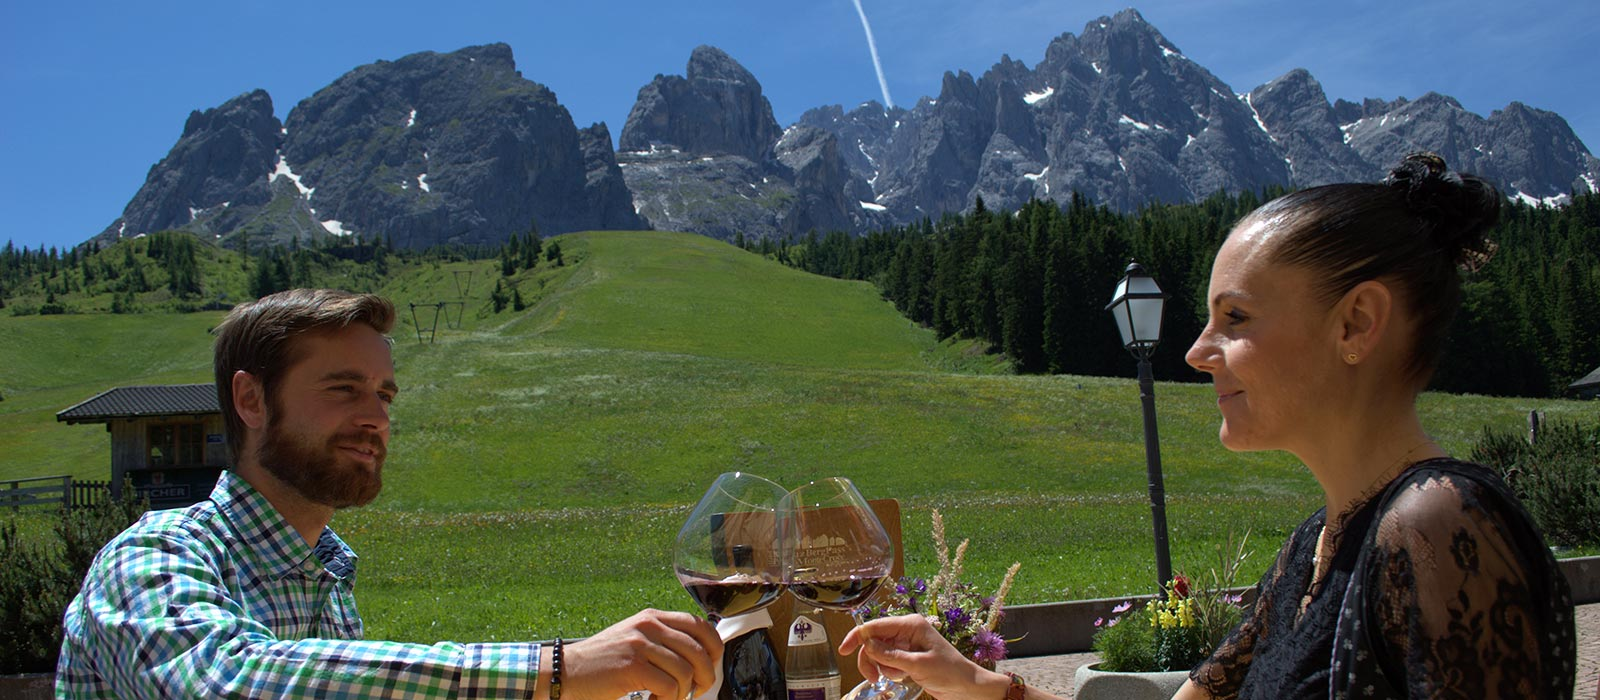 Your Gourmet Hotel in the Dolomites